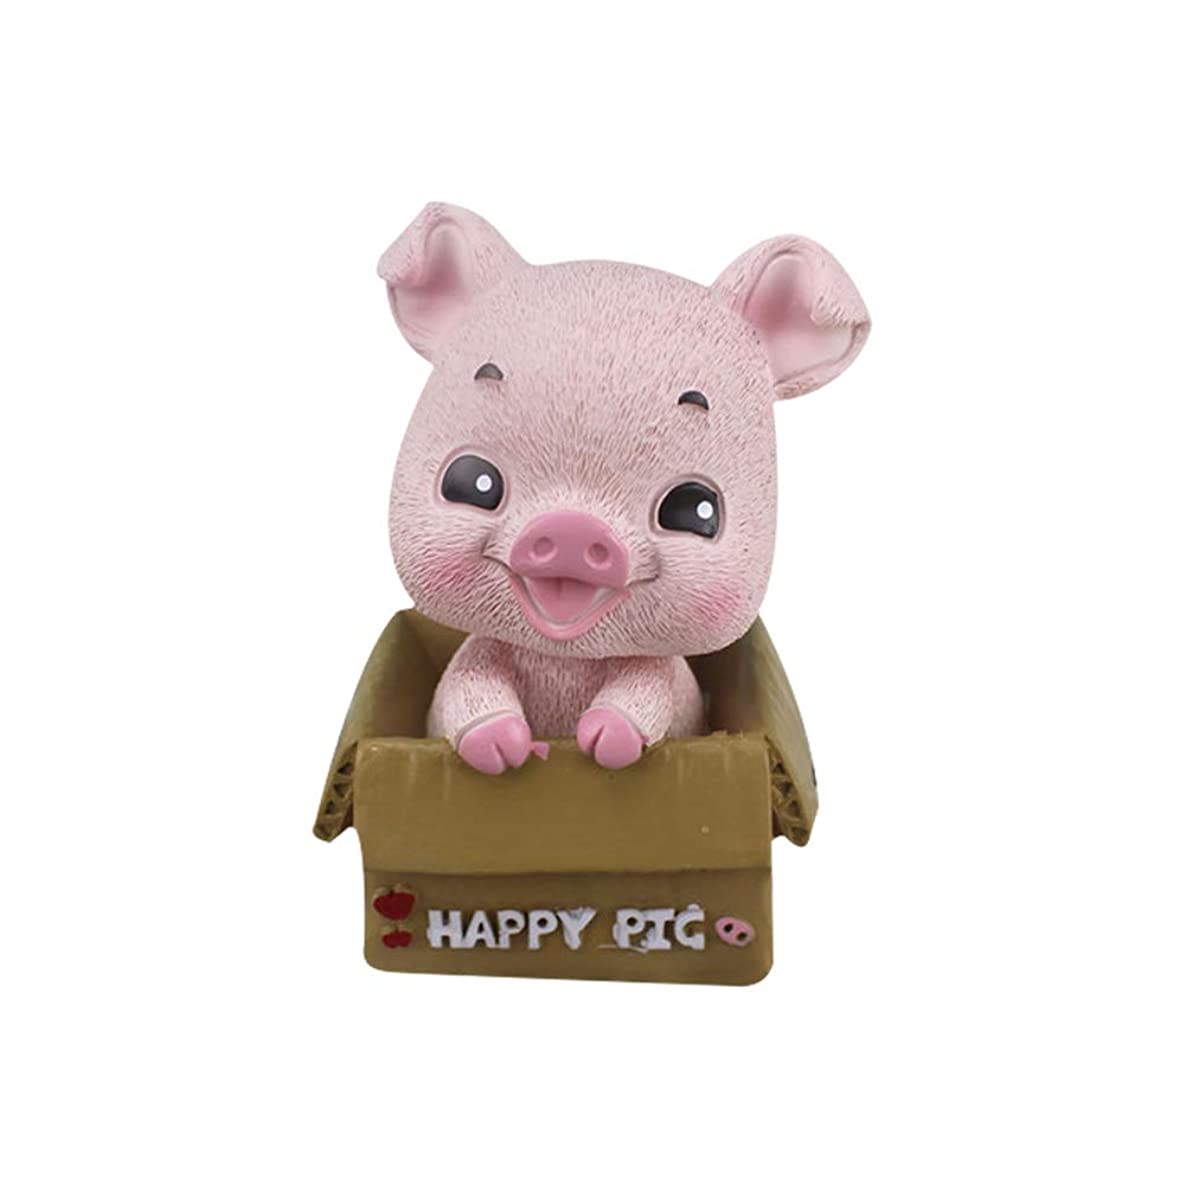 1pc Resin Pig Figurine Model Round Eye Style Home Car Decor Micro Bonsai Ornament Mini Pig Statue Pig Sculpture